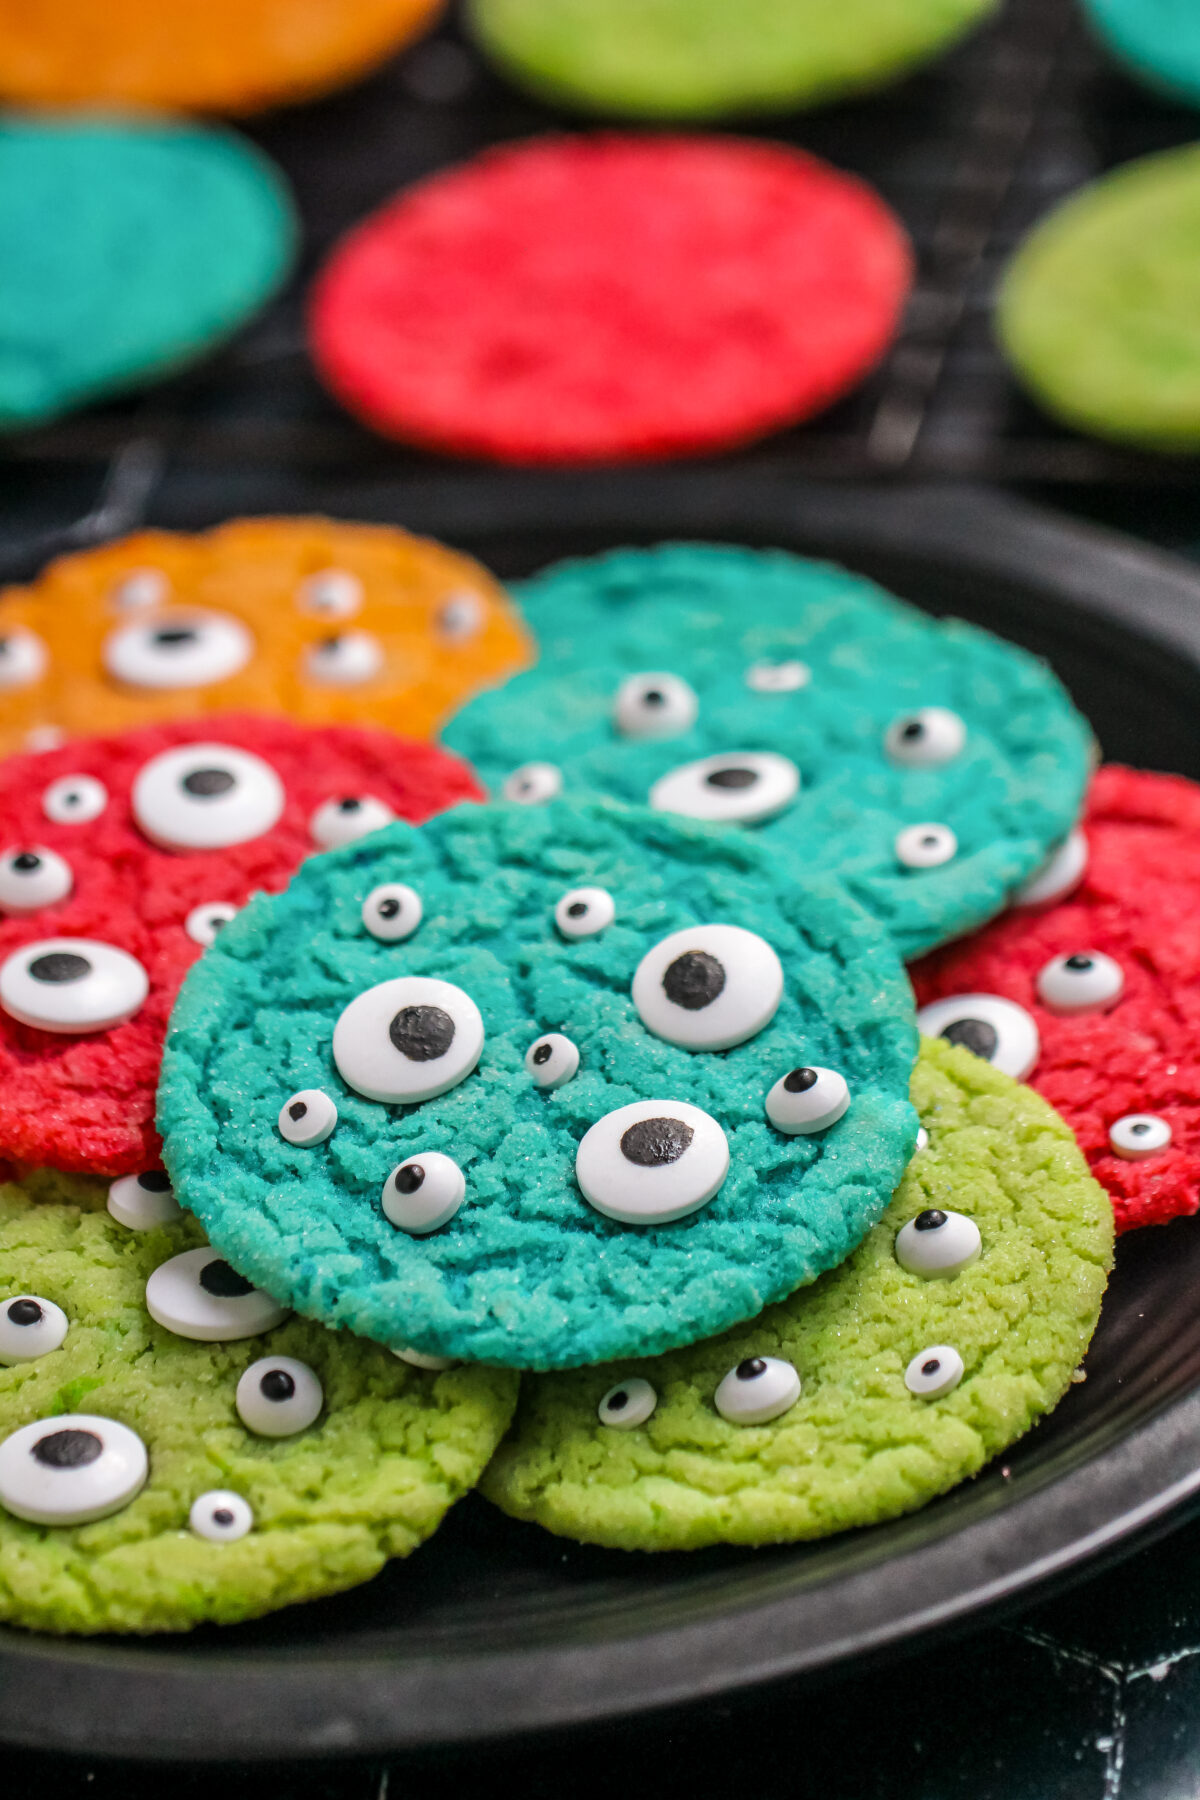 Learn how to make monster eye cookies with this recipe. Perfect for Halloween parties, these spooky treats are quick and easy to prepare!